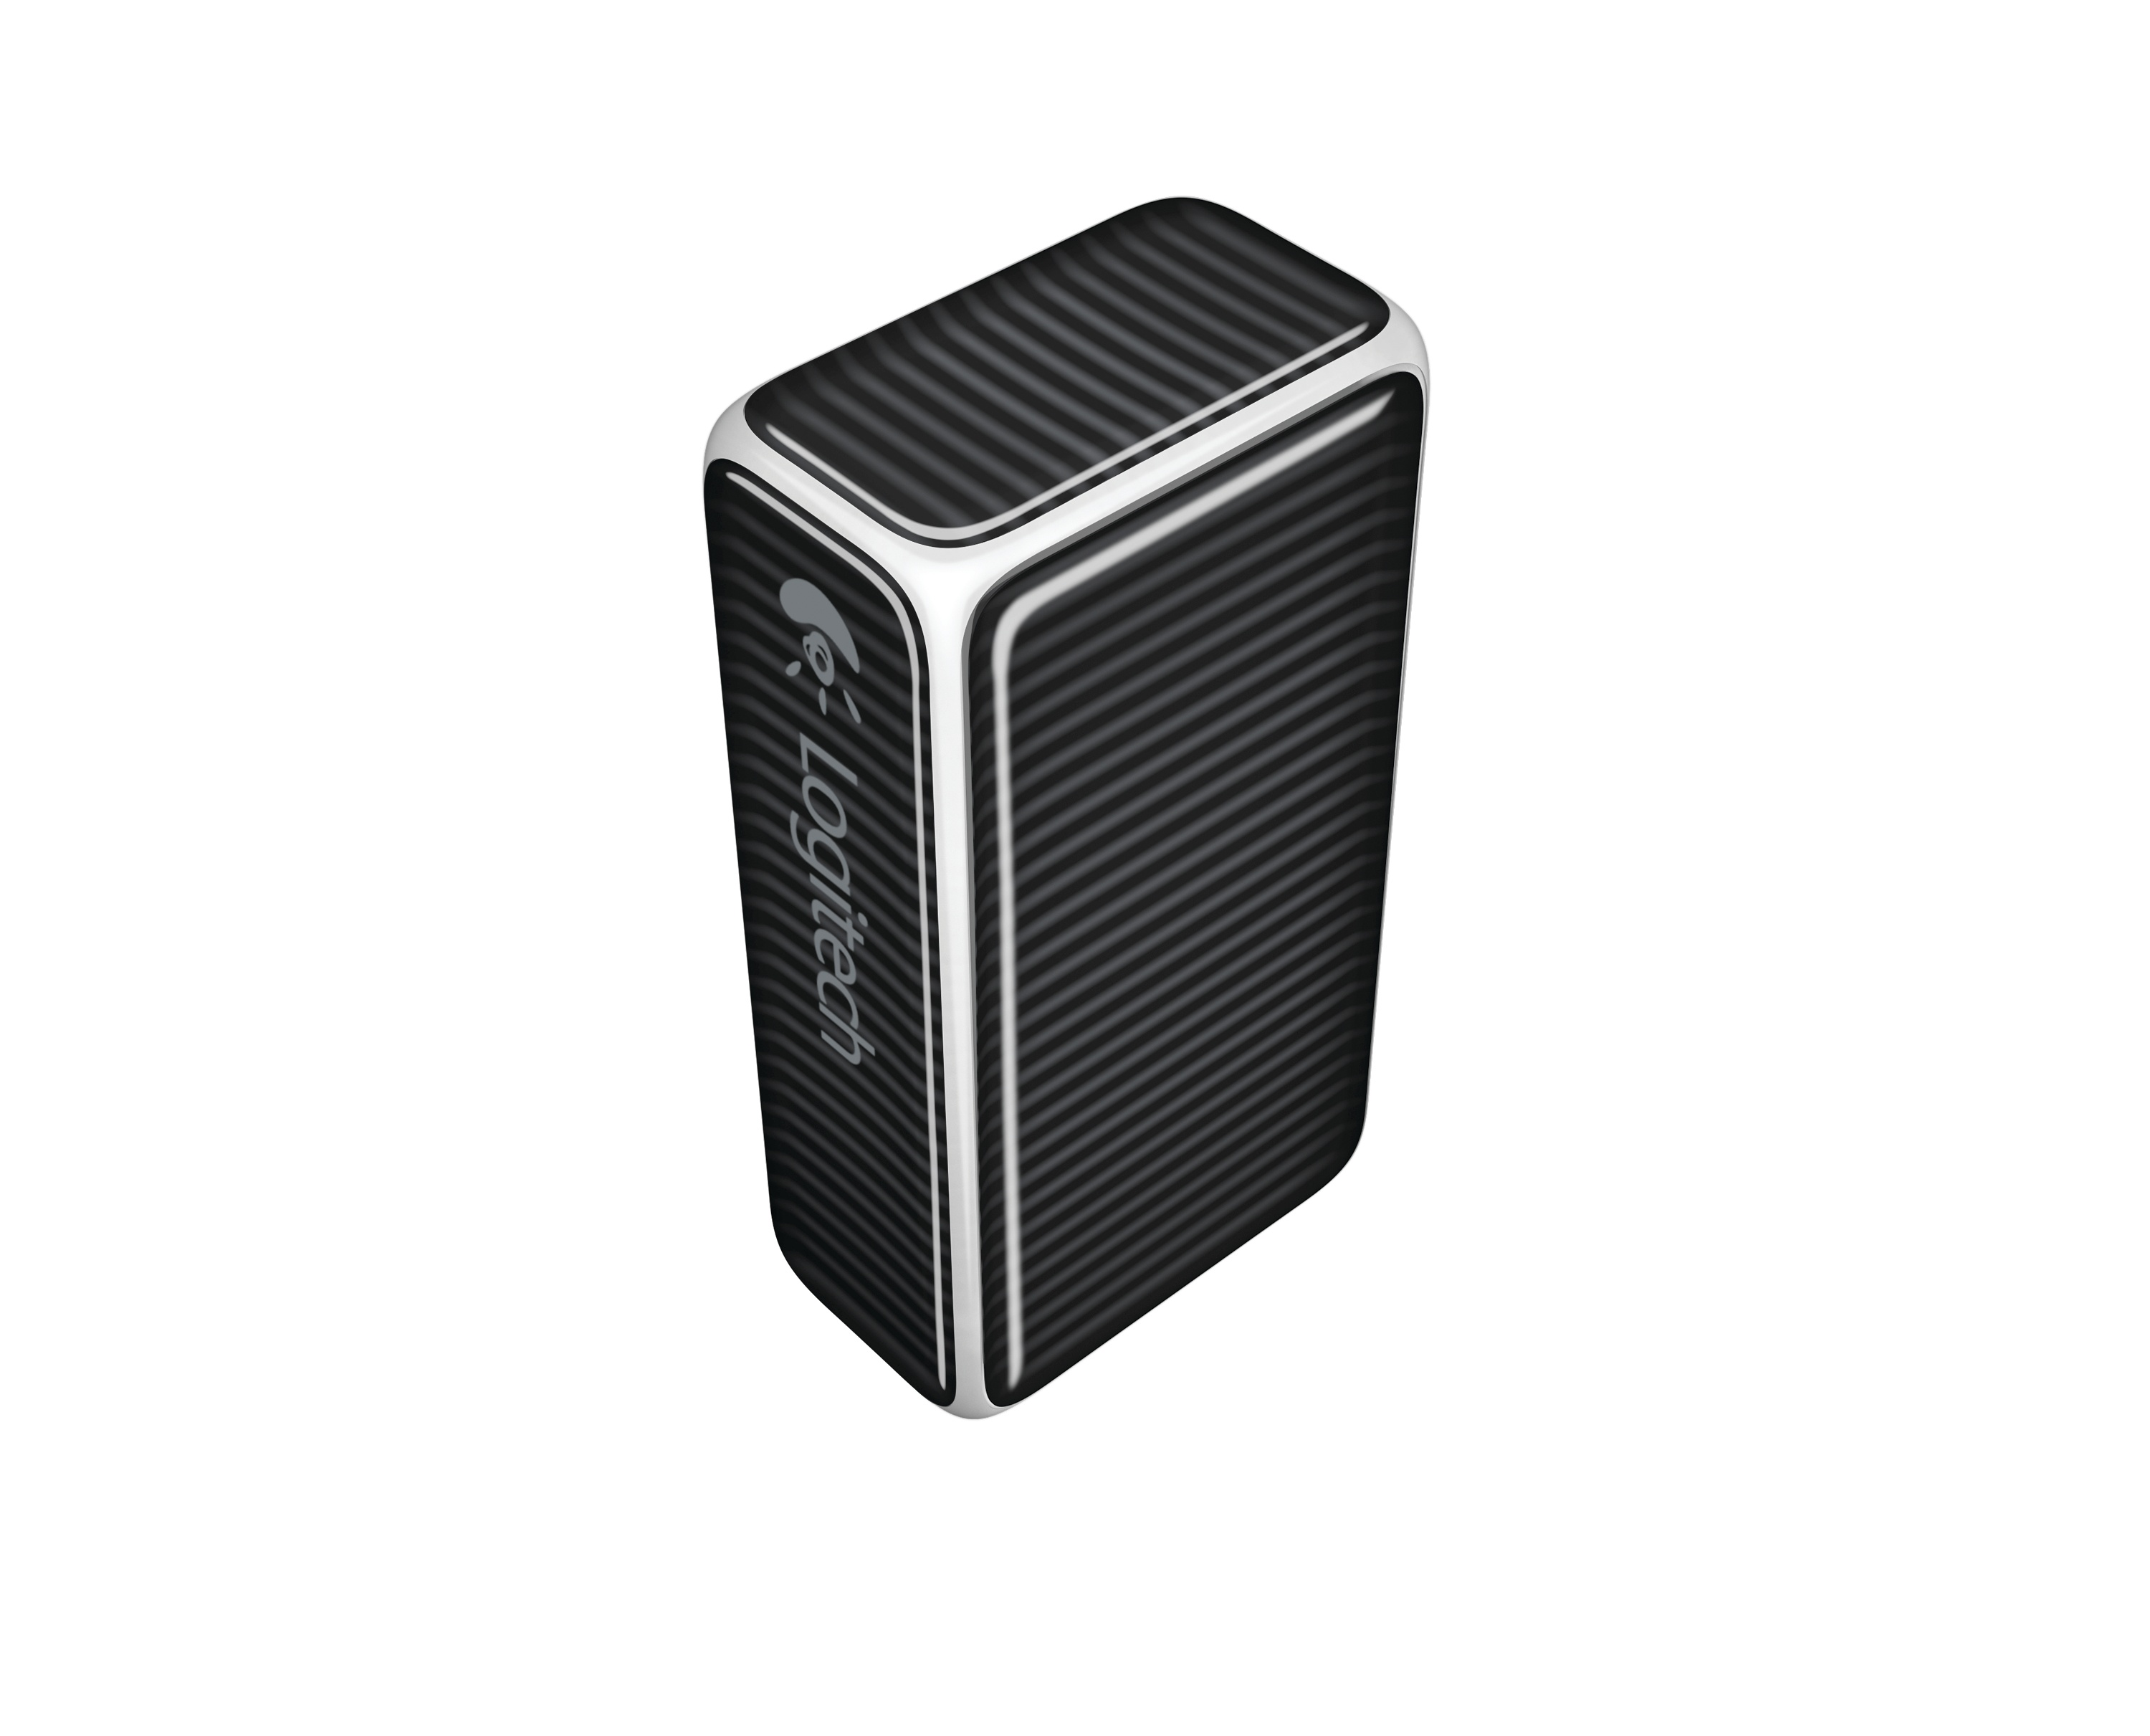 Logitech Cube: Mouse and Presenter!